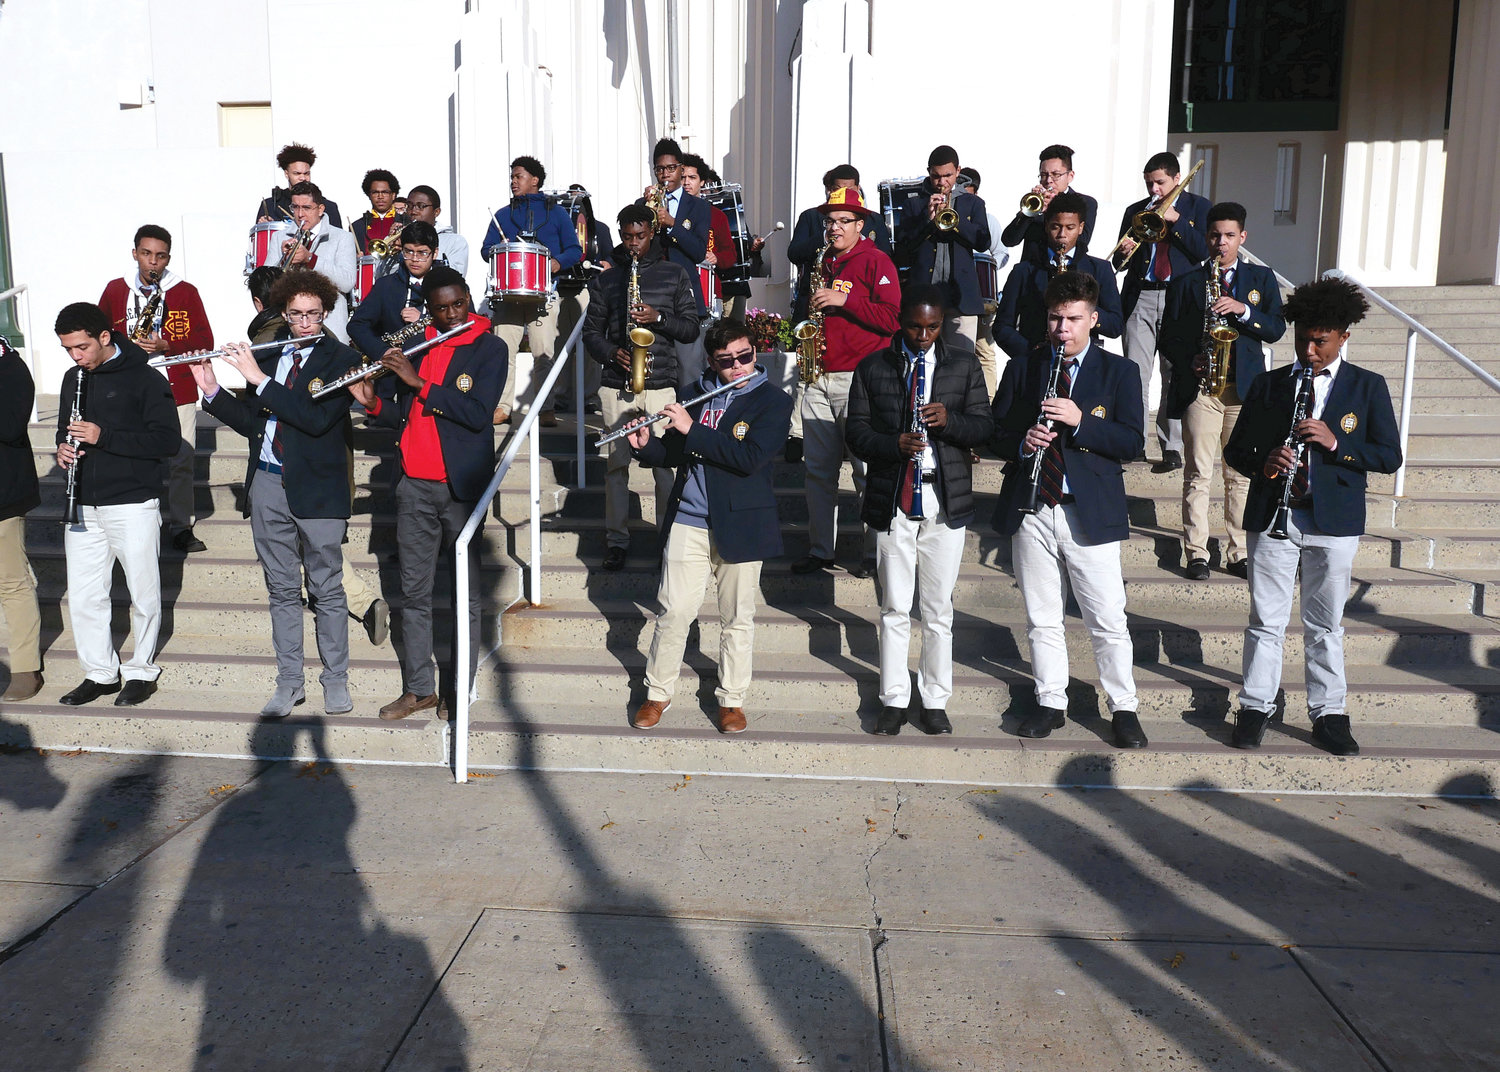 The band from Cardinal Hayes High School in the Bronx serenades arriving participants.